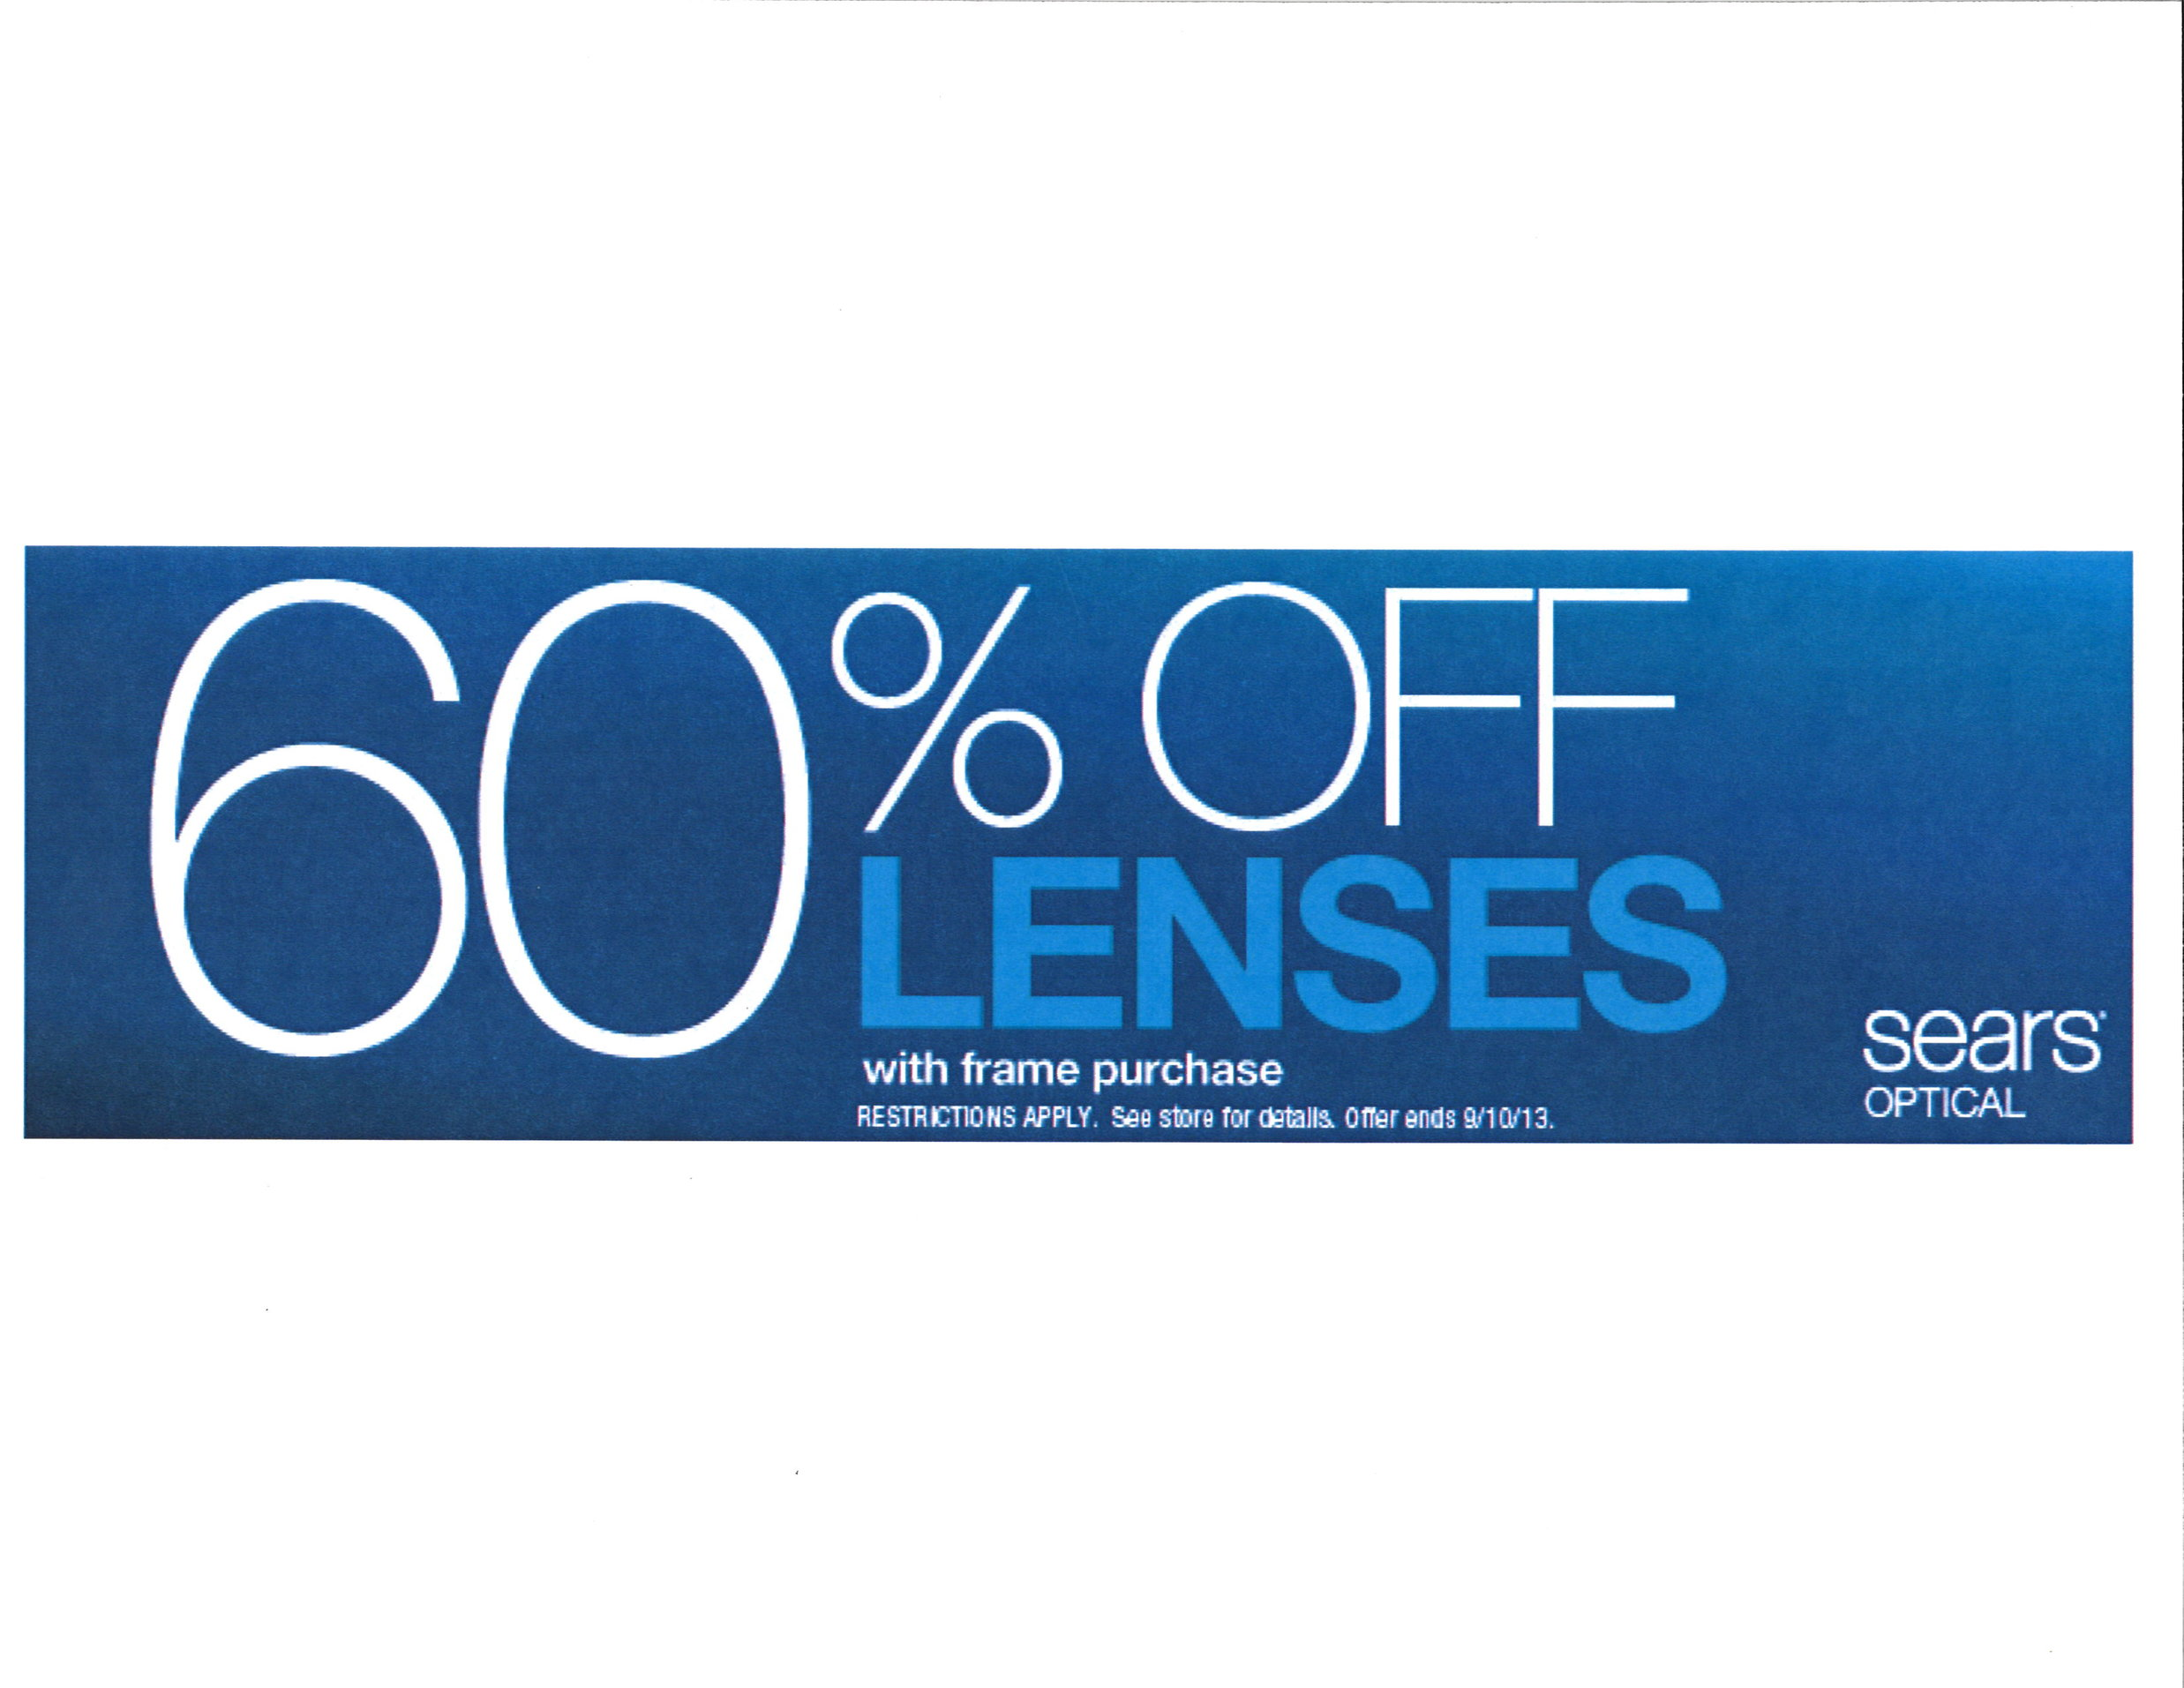 great deals at sears optical hemet valley mall